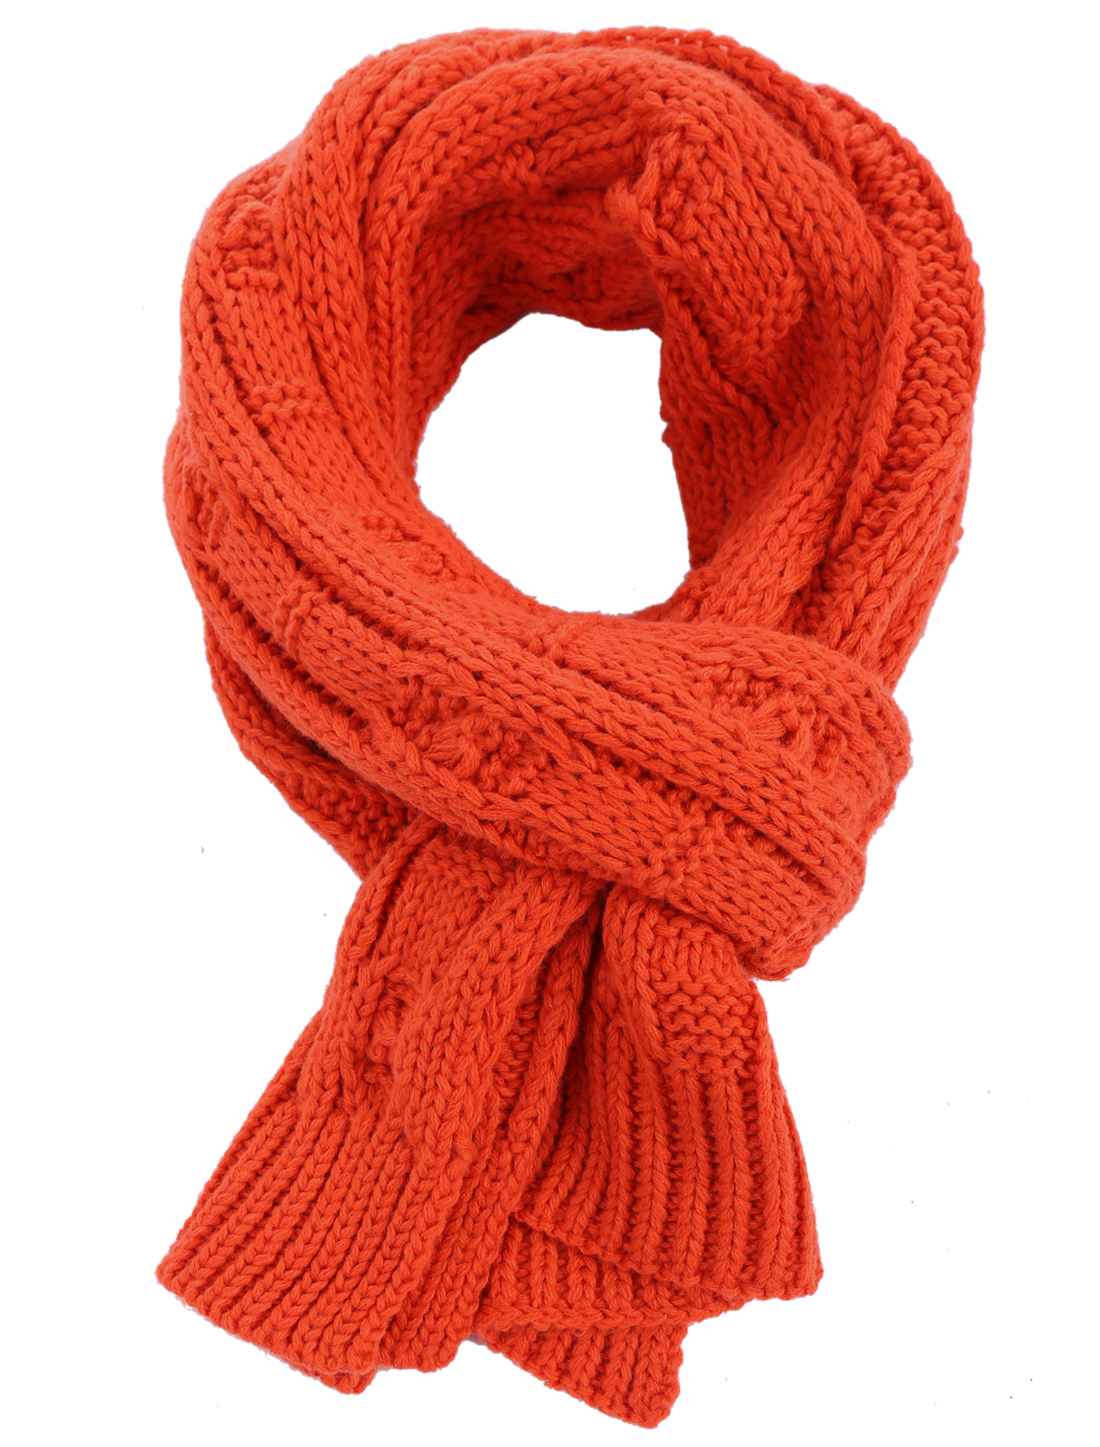 Man Fashionable Knitting Elastic Braided Orange Red Scarf